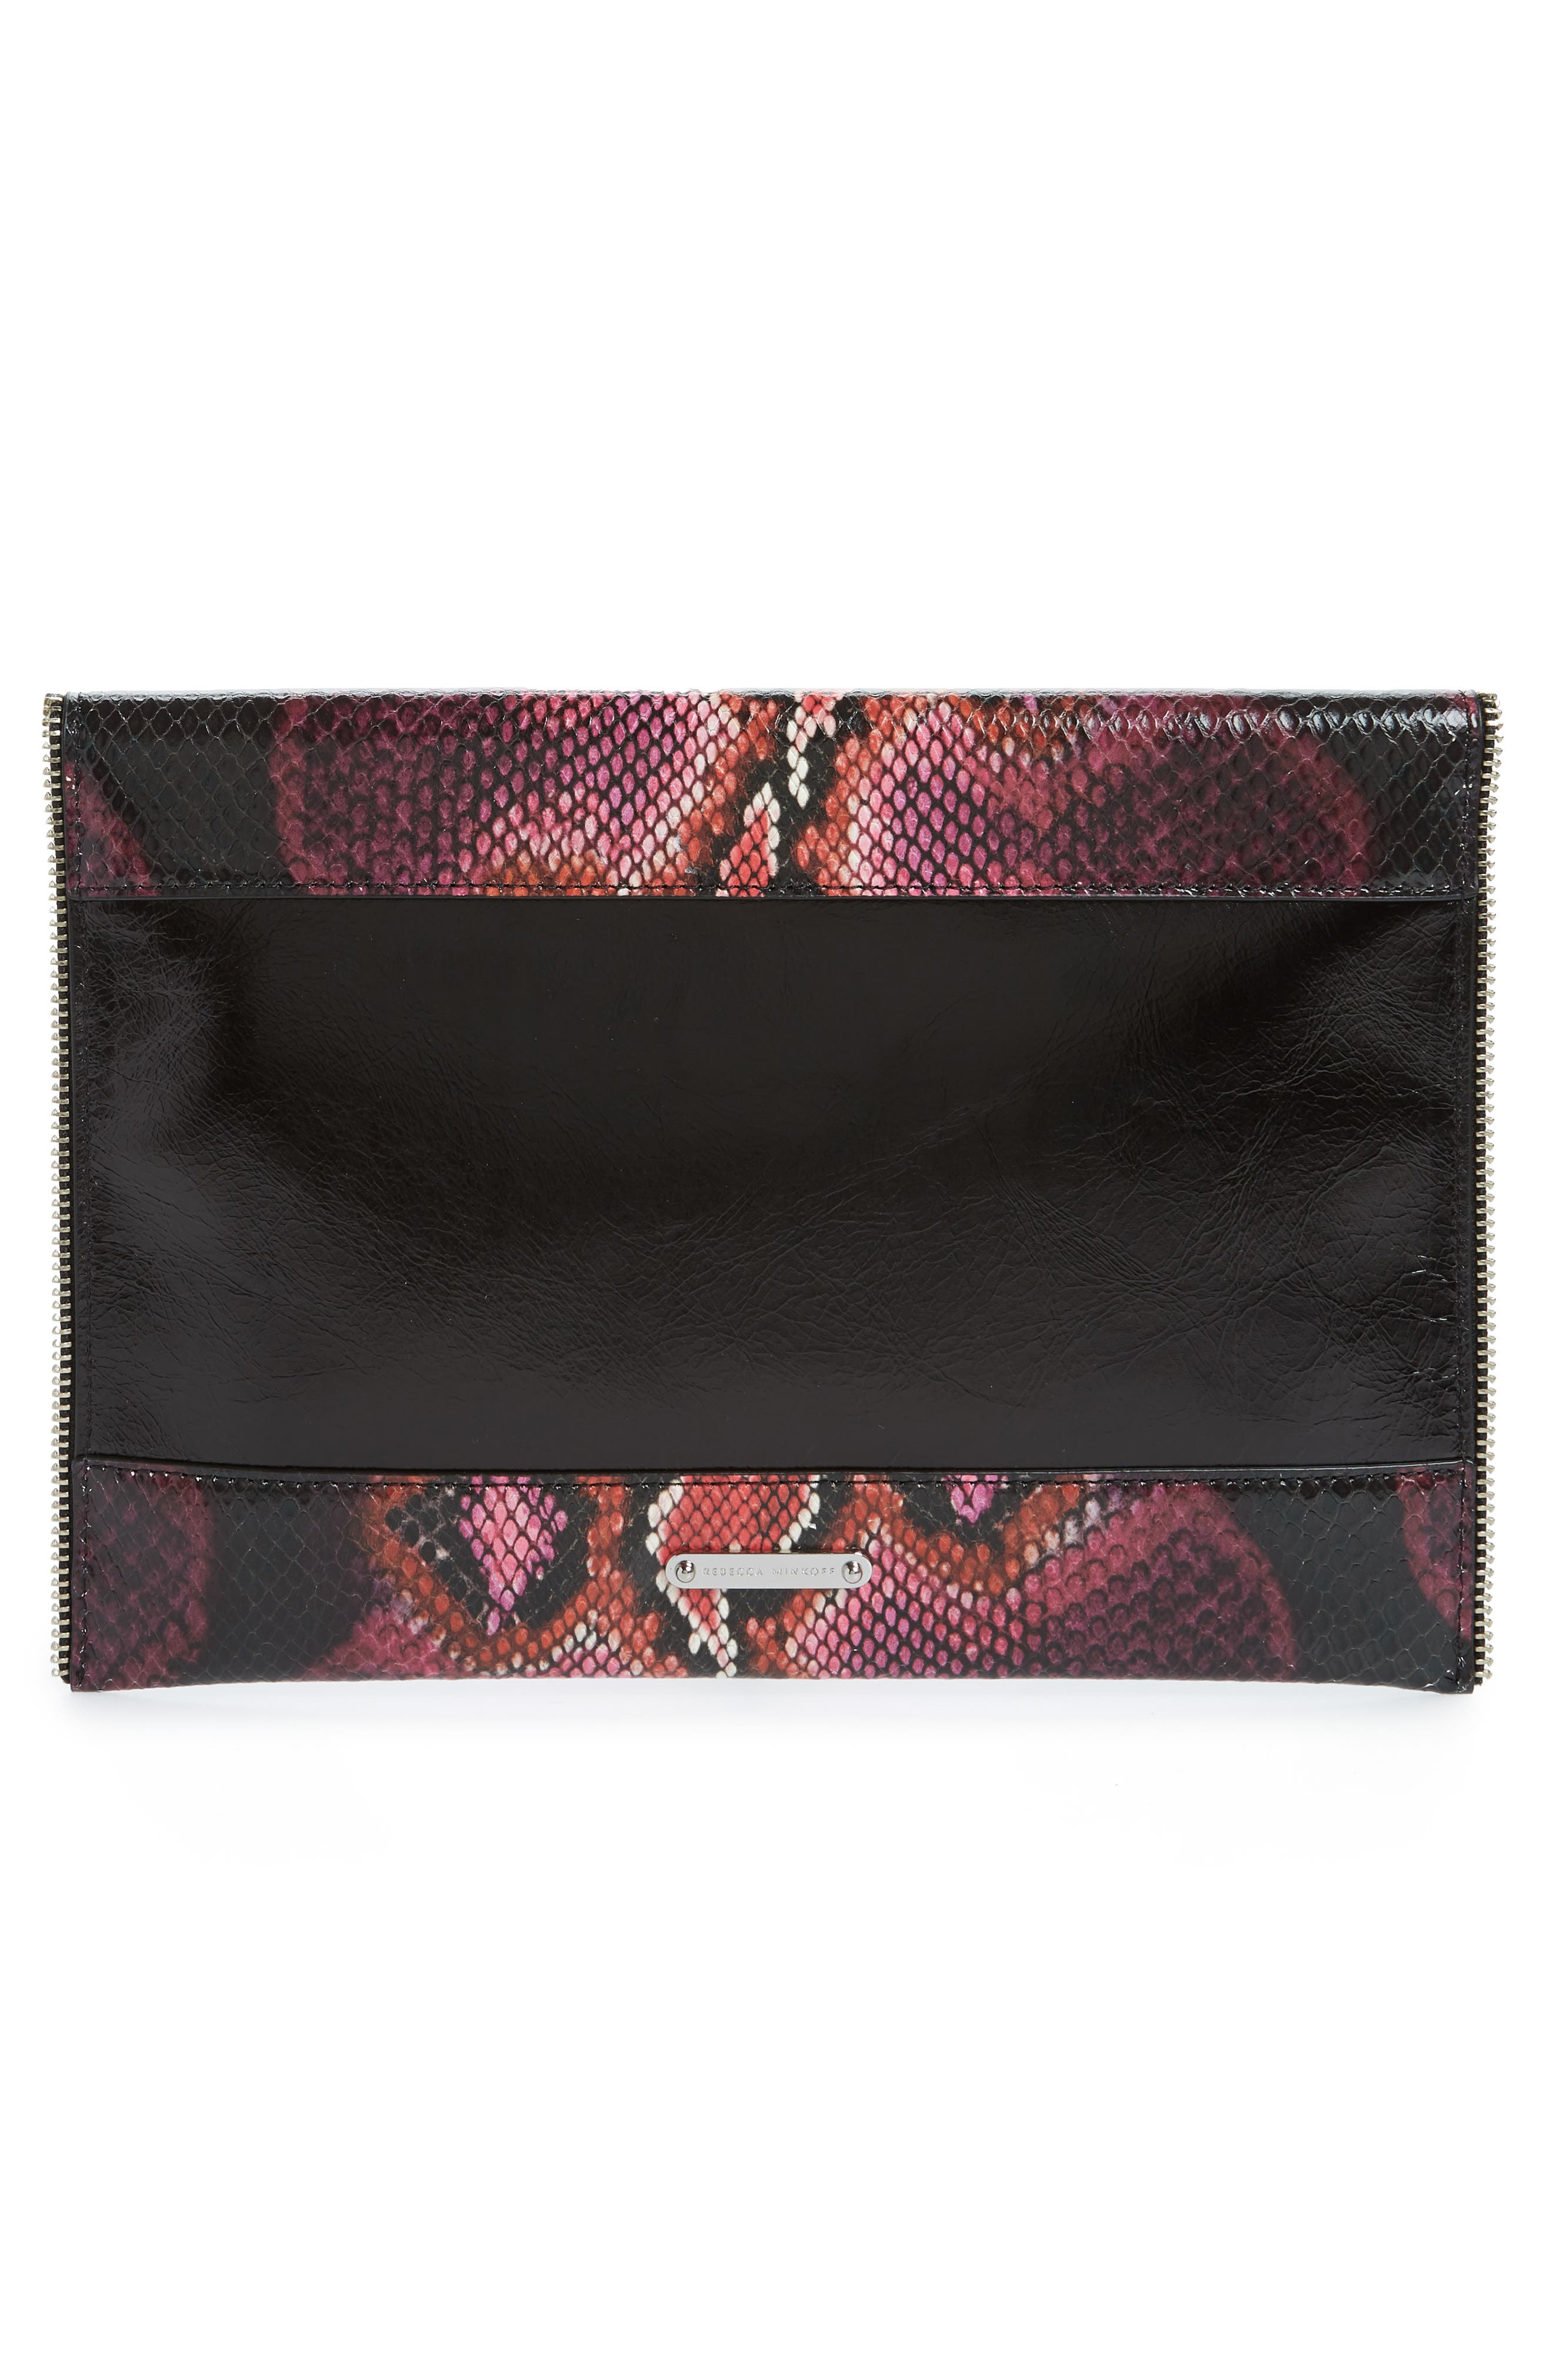 REBECCA MINKOFF, Leo Snake Embossed Leather Clutch, Alternate thumbnail 4, color, 650